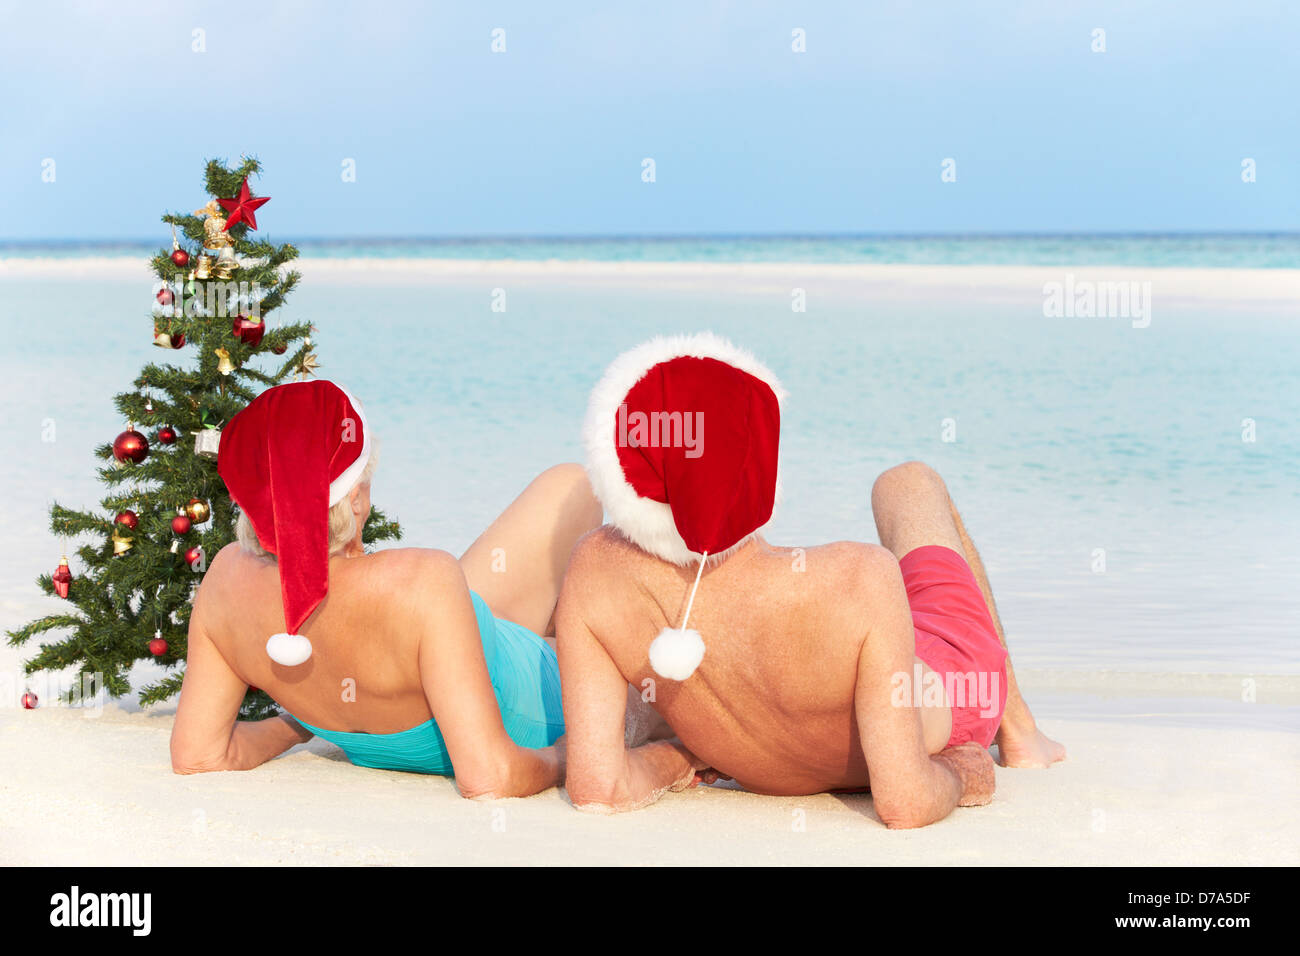 Senior Couple Sitting On Beach With Christmas Tree And Hats - Stock Image